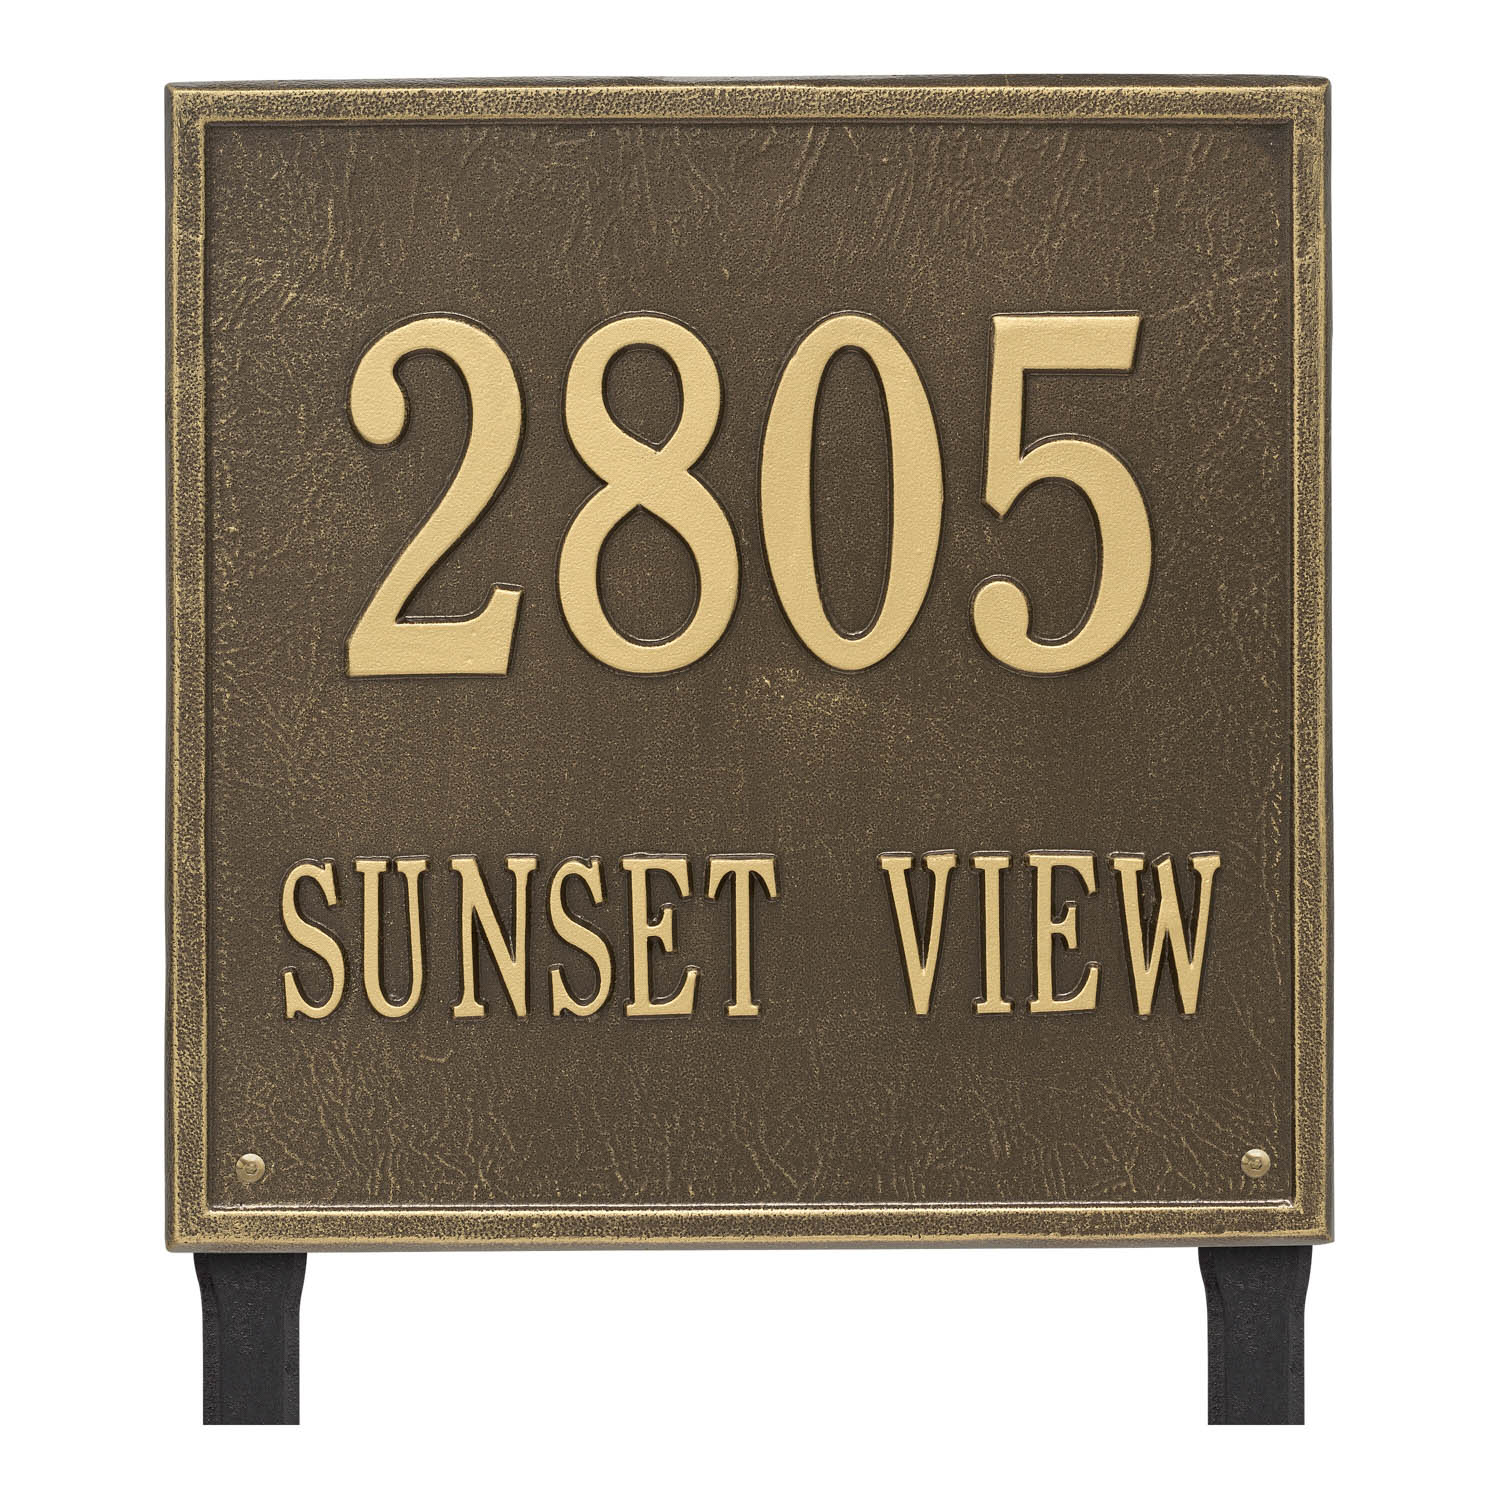 bda63aaacf75 Personalized Square Antique Brass Finish, Estate Lawn with Two Lines of Text